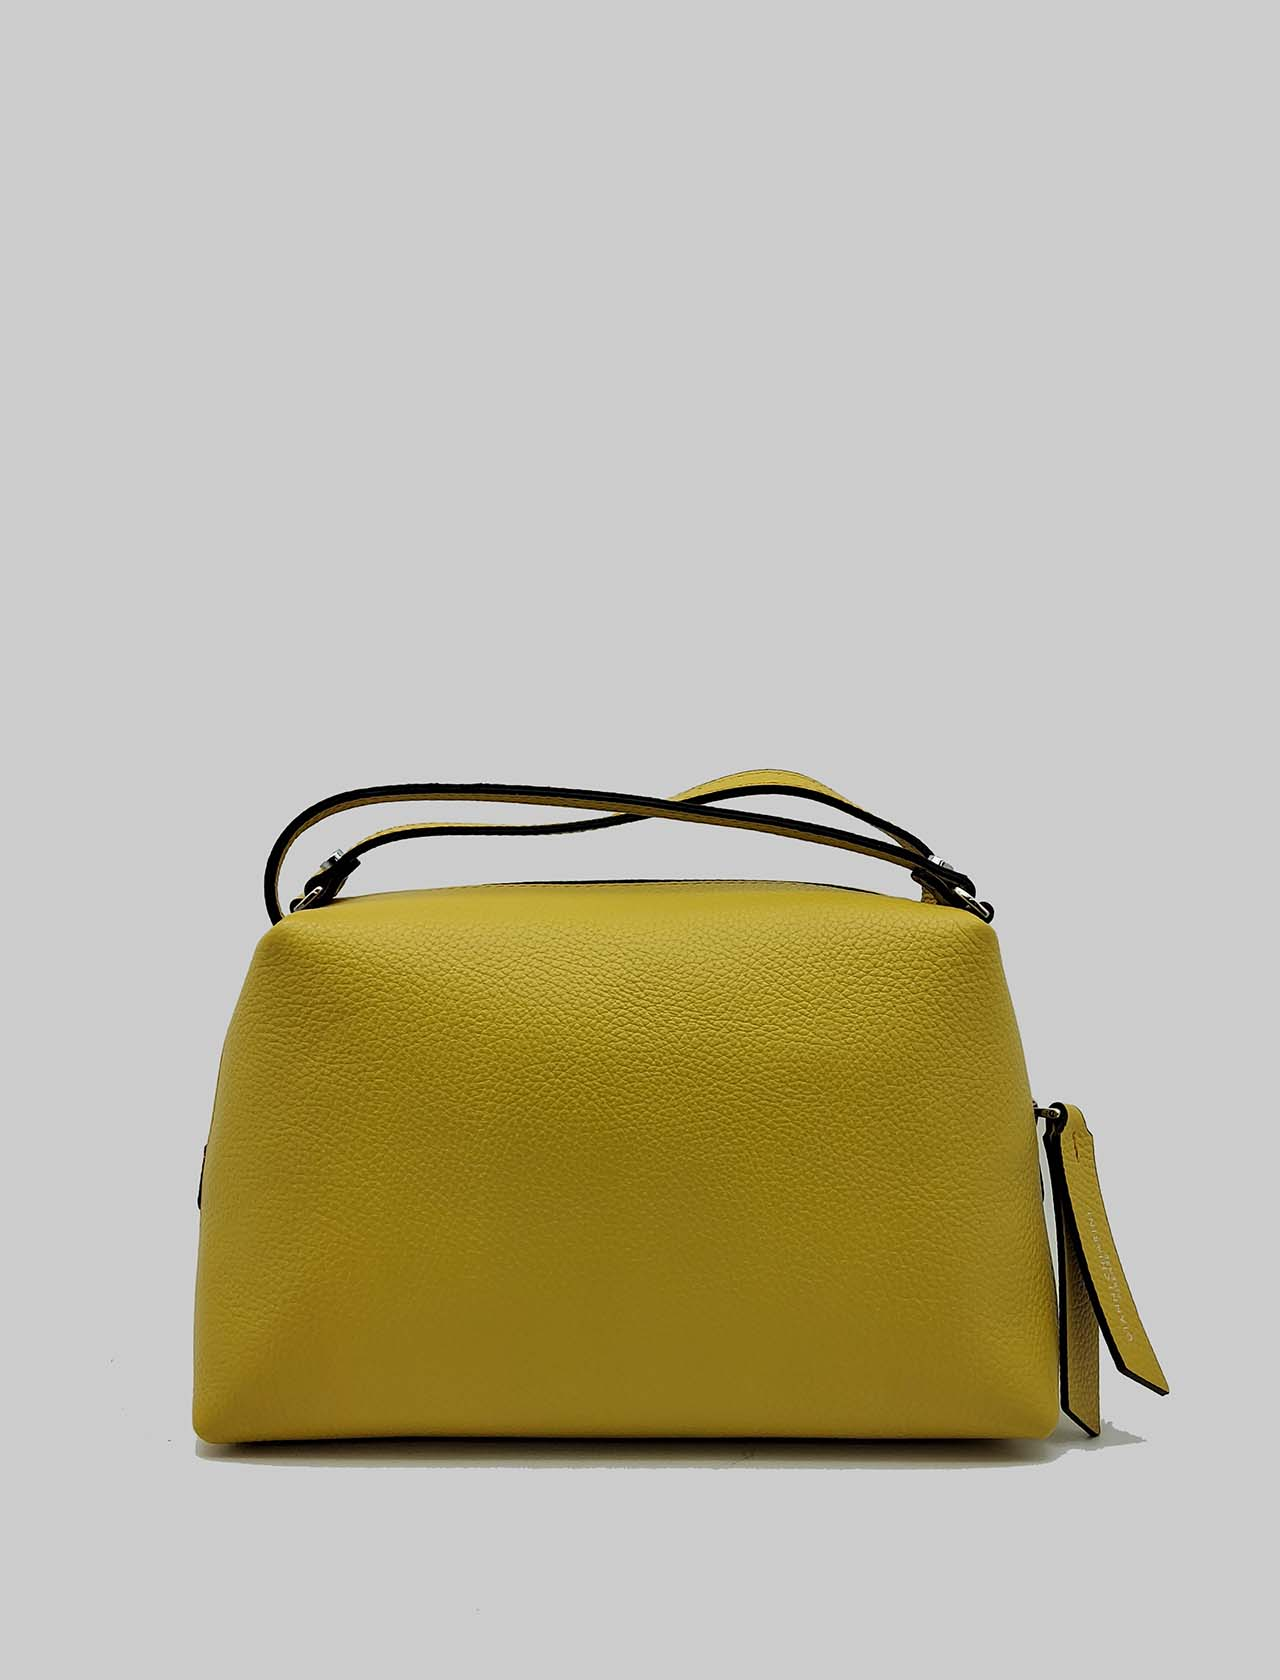 Alifa Woman Bag in Mustard Leather with Double Hand Handle and Removable Shoulder Strap Gianni Chiarini | Bags and backpacks | BS814811040